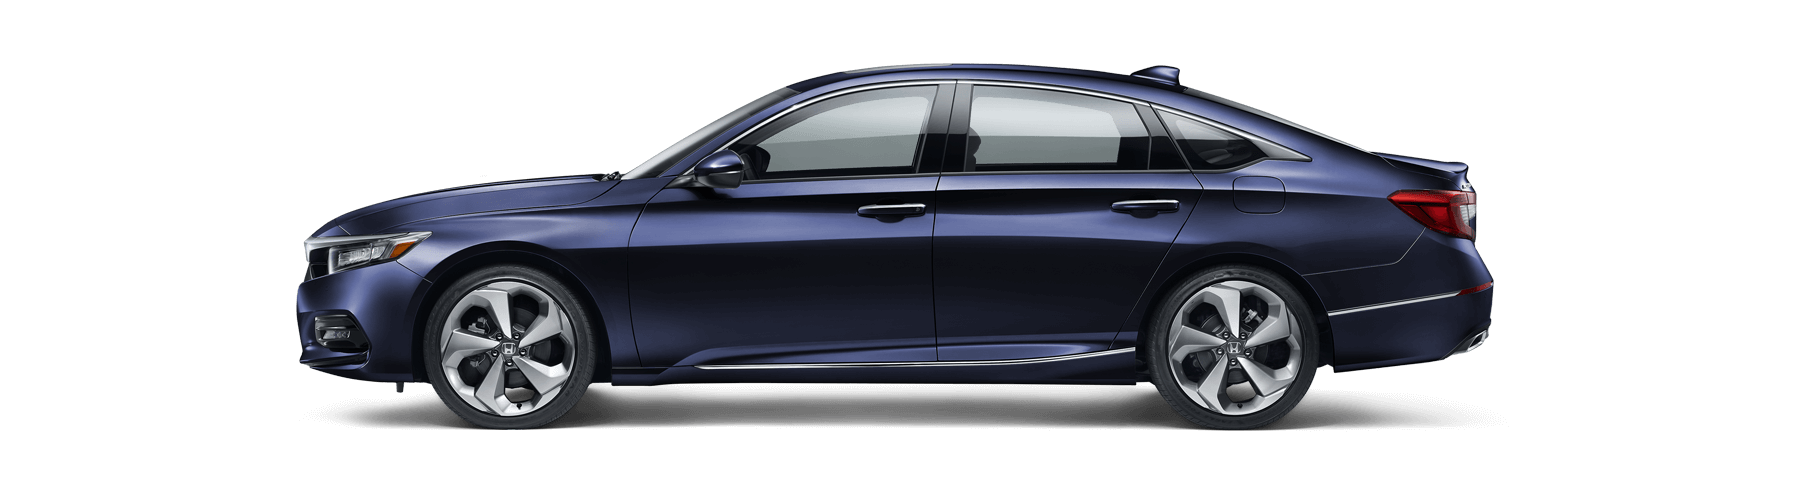 2018 Honda Accord Sedan Side Profile